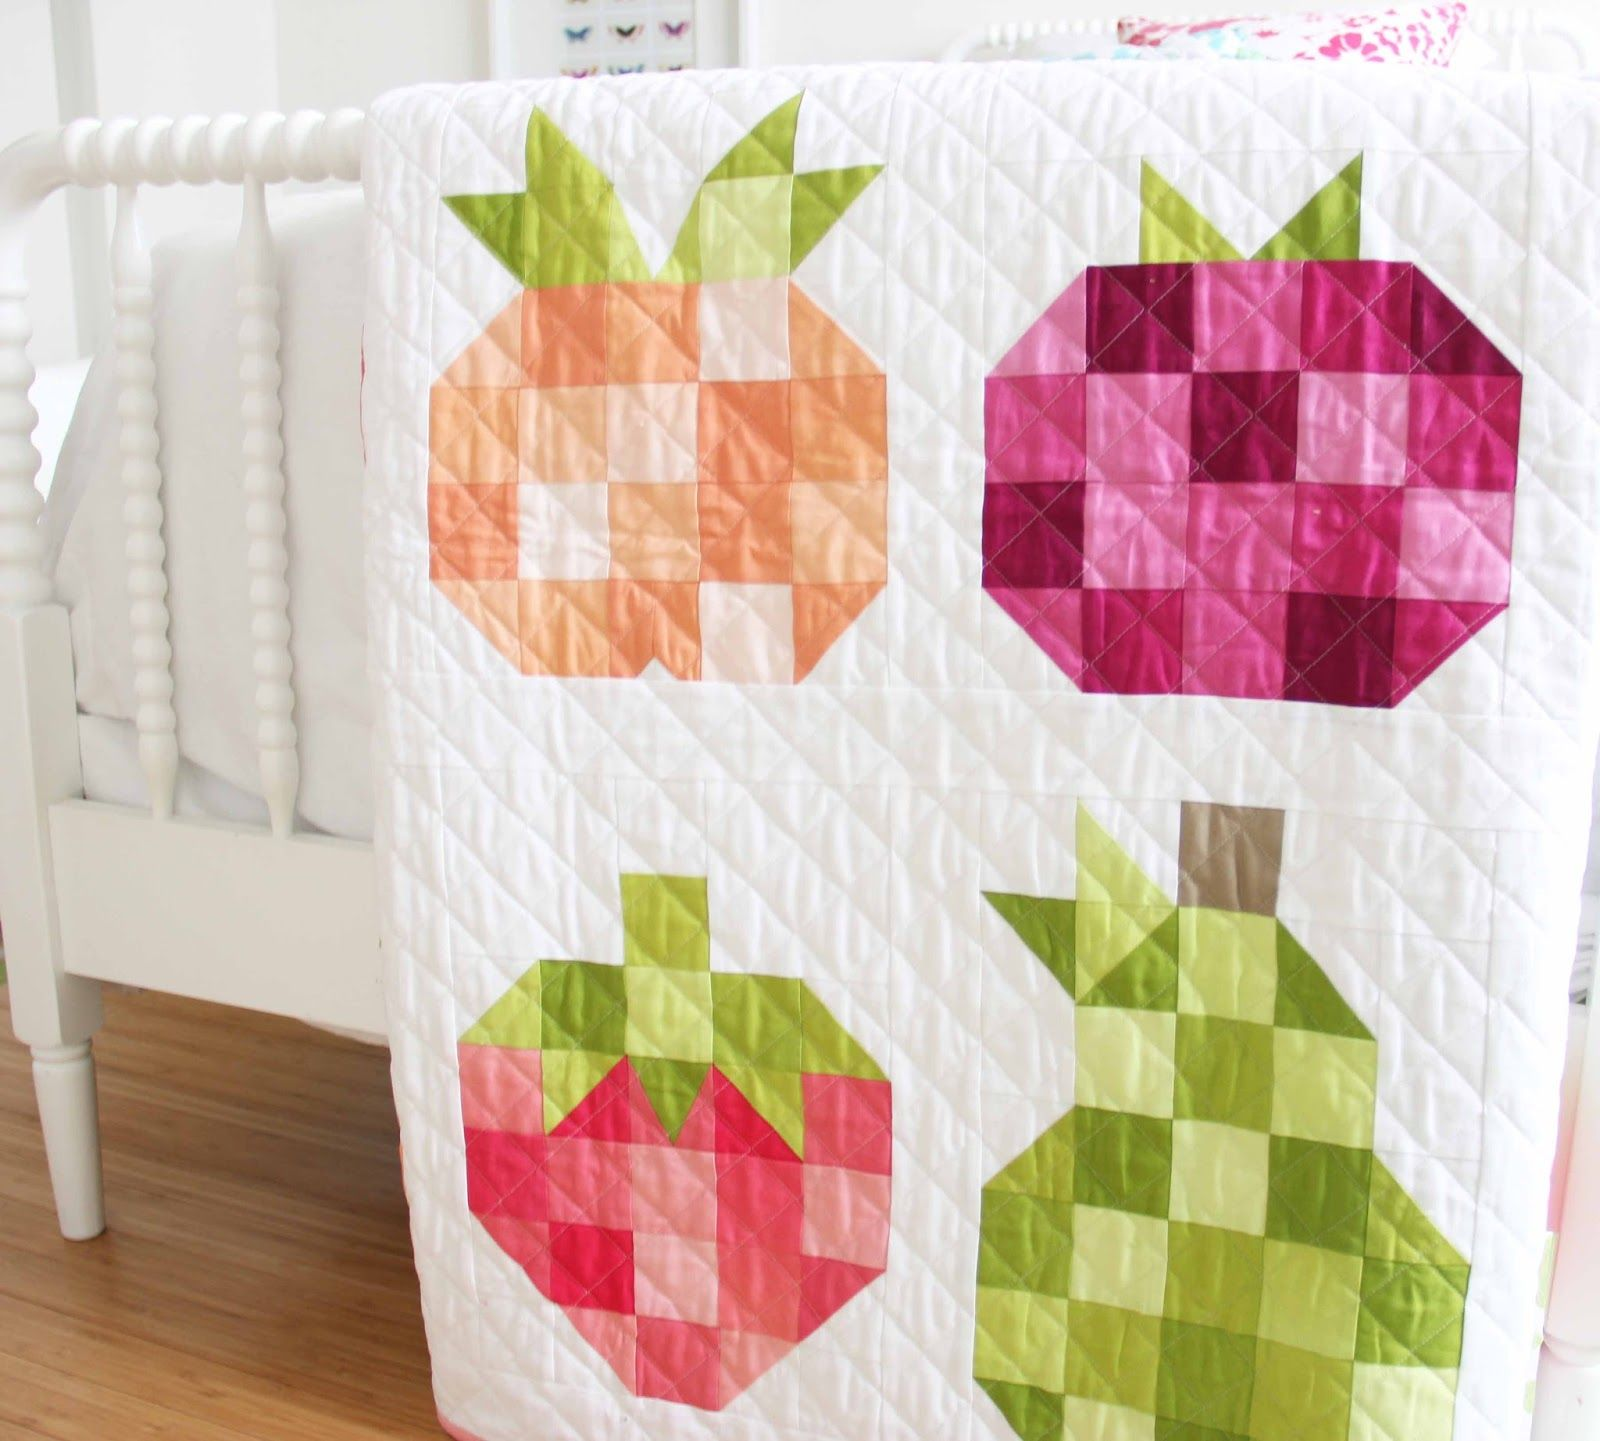 V and Co.: V and Co. New OMBRE Patterns and Sale | creative ... : creative quilting ideas - Adamdwight.com